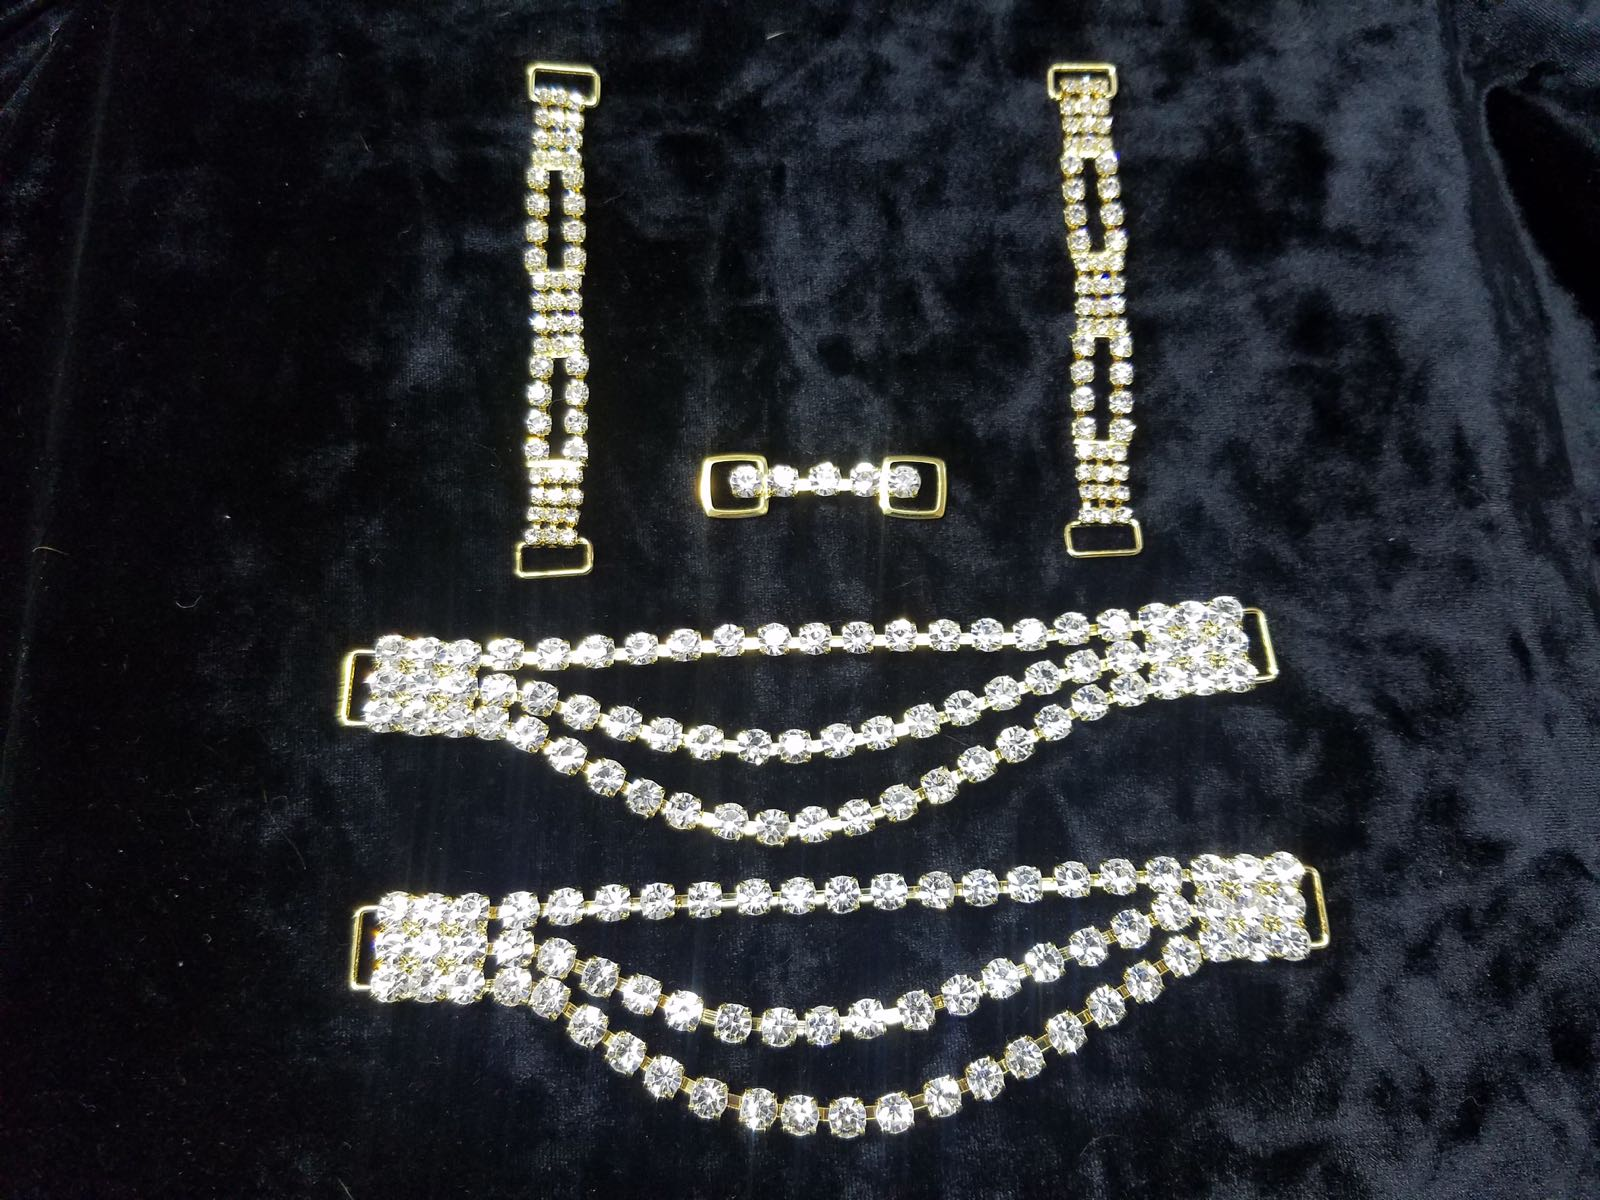 Set K, Gold with clear crystals, $65.00